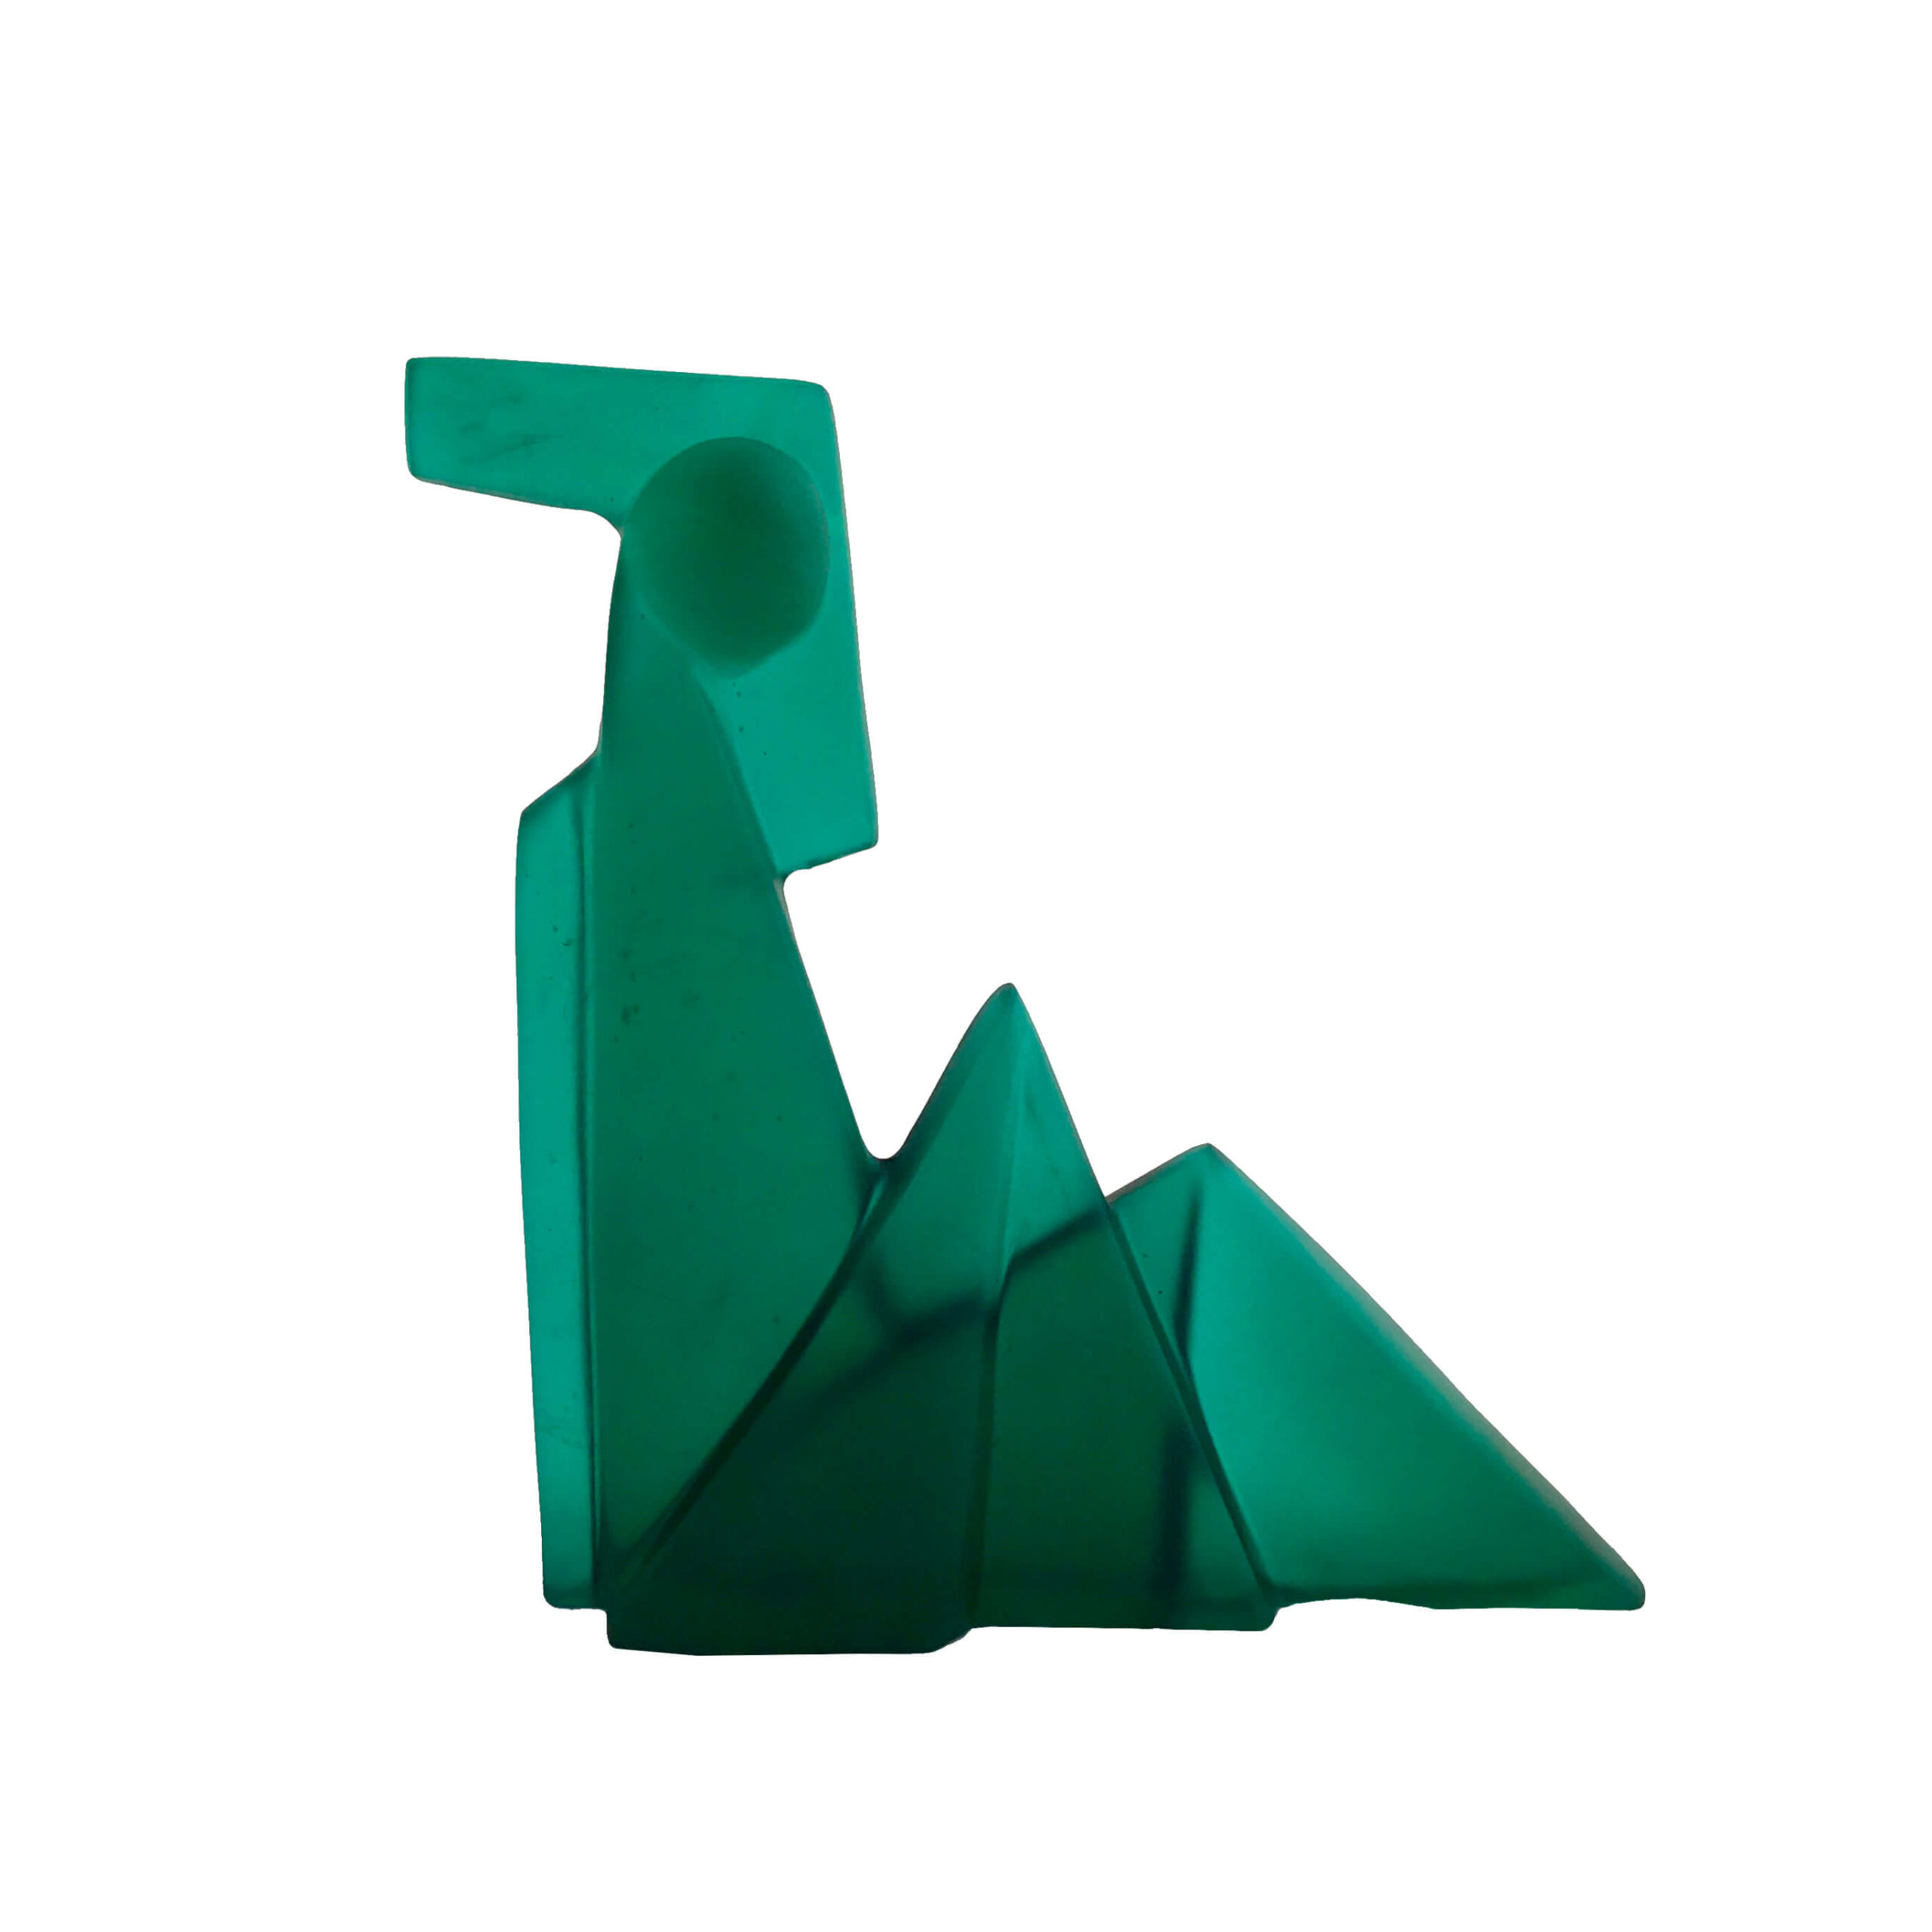 Image of Green Seated Figure #2